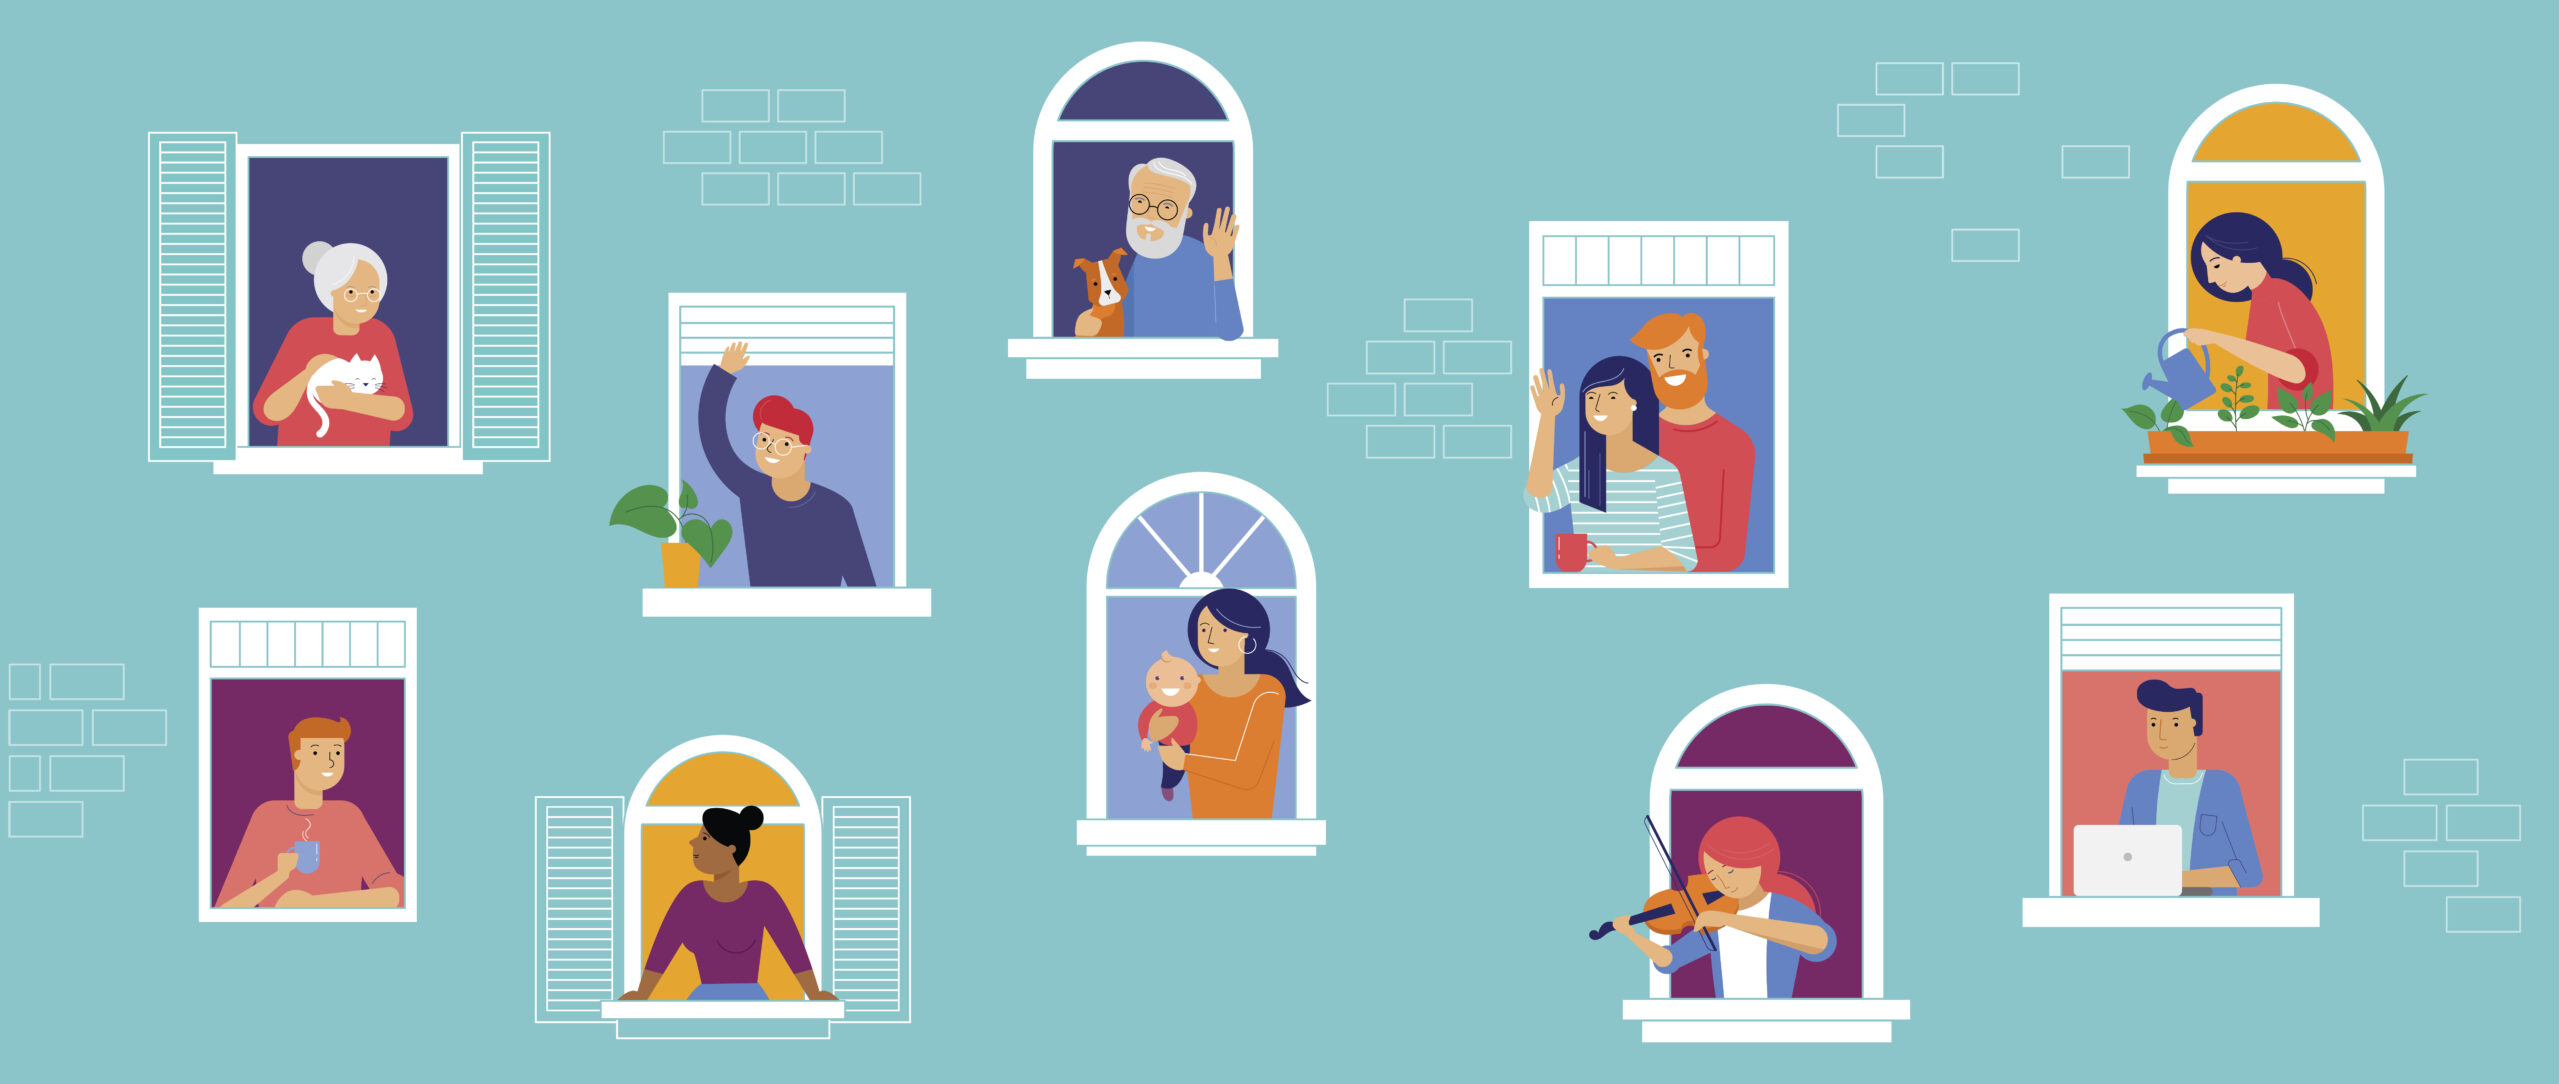 illustration of people at home in windows